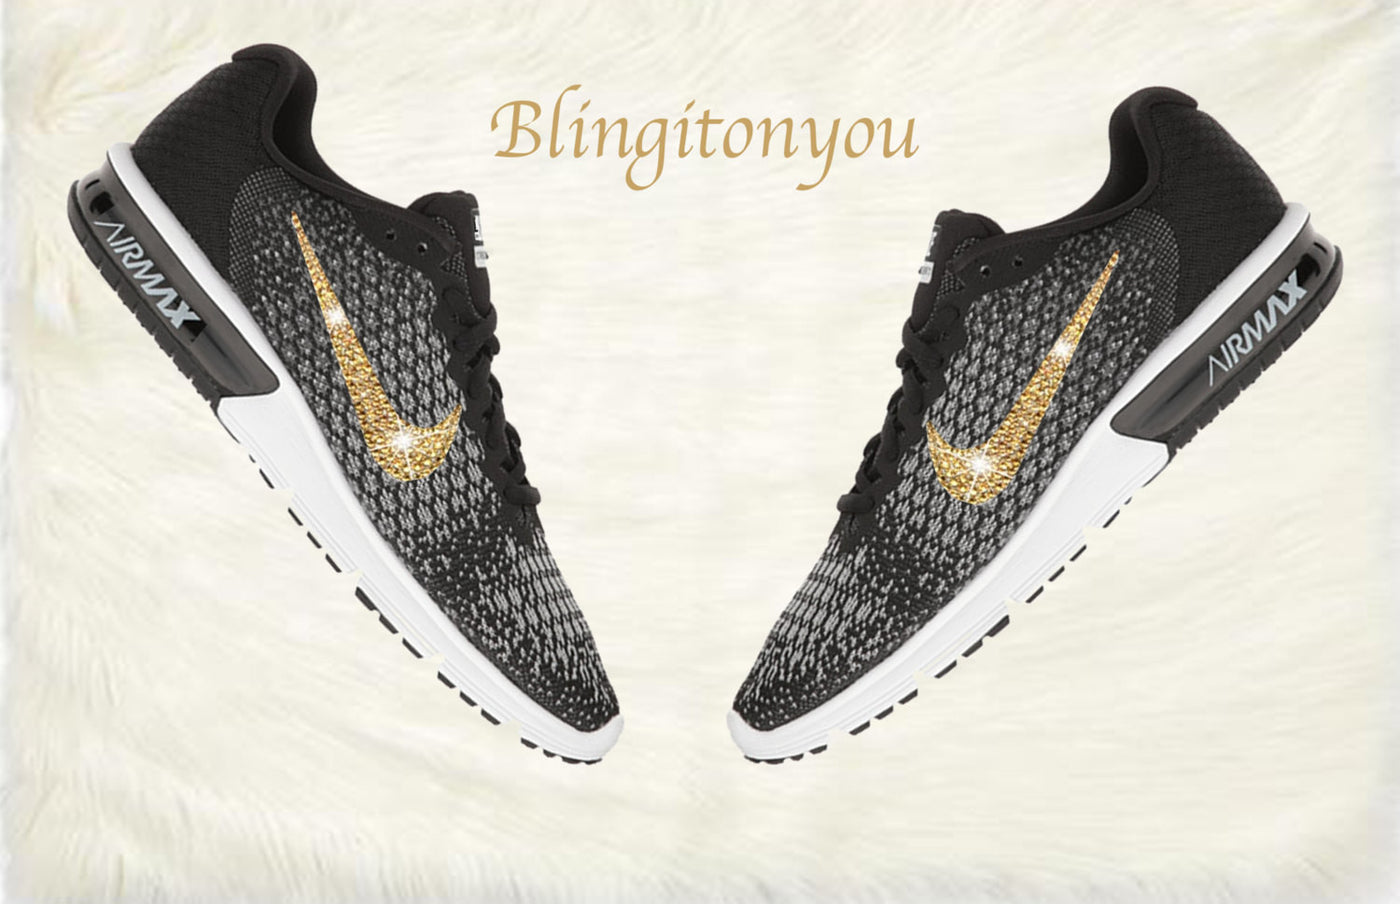 9d1cf4a2c5b Swarovski Nike Air Max Sequent 2 Shoes Black Blinged Out With Gold  Swarovski Crystals - Nike ...